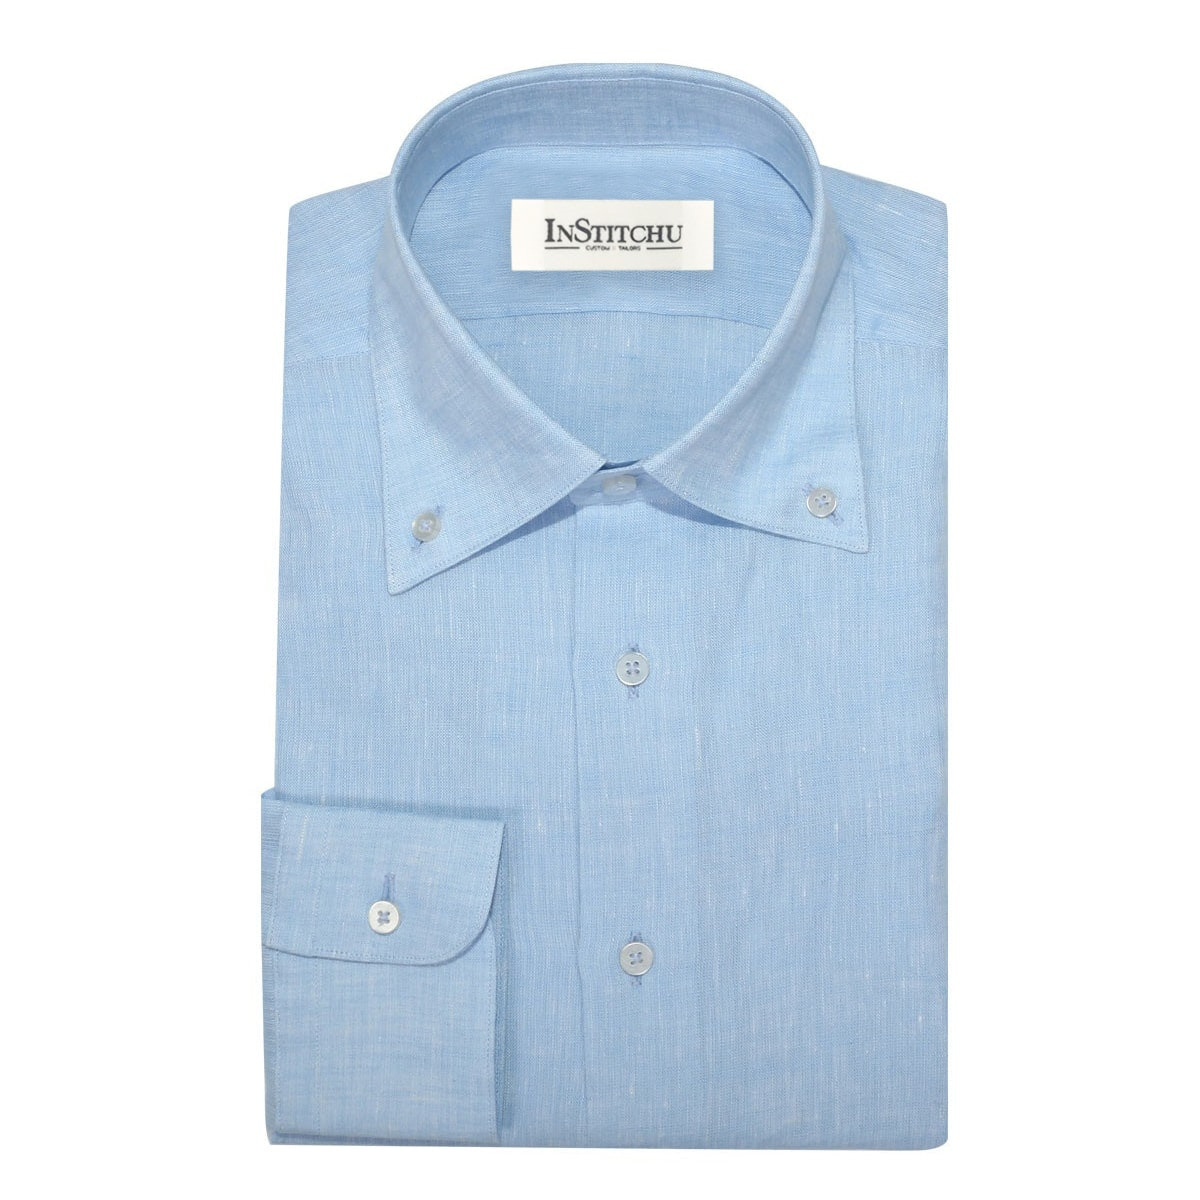 InStitchu Collection The Encinitas Light Blue Linen Shirt